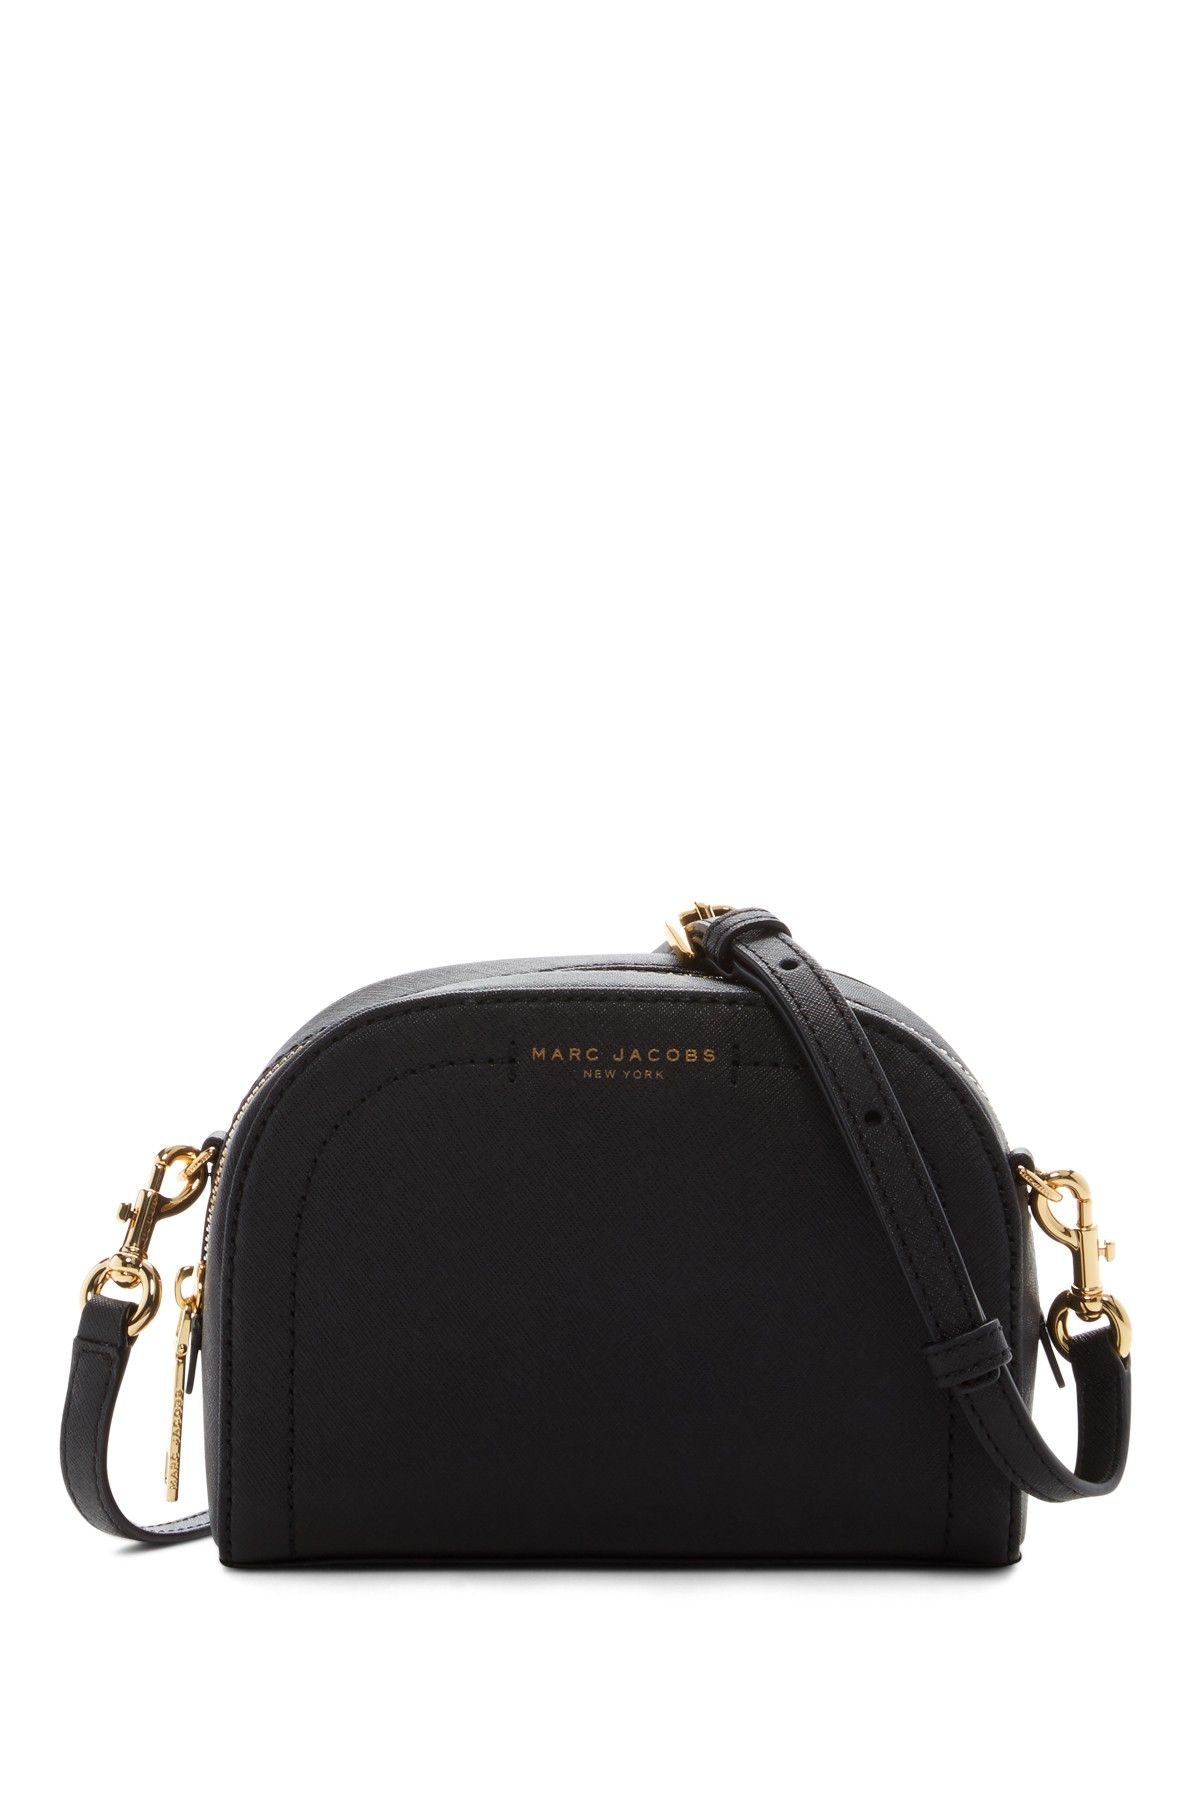 a3564830a036 Playback Leather Crossbody Bag by Marc Jacobs on  nordstrom rack